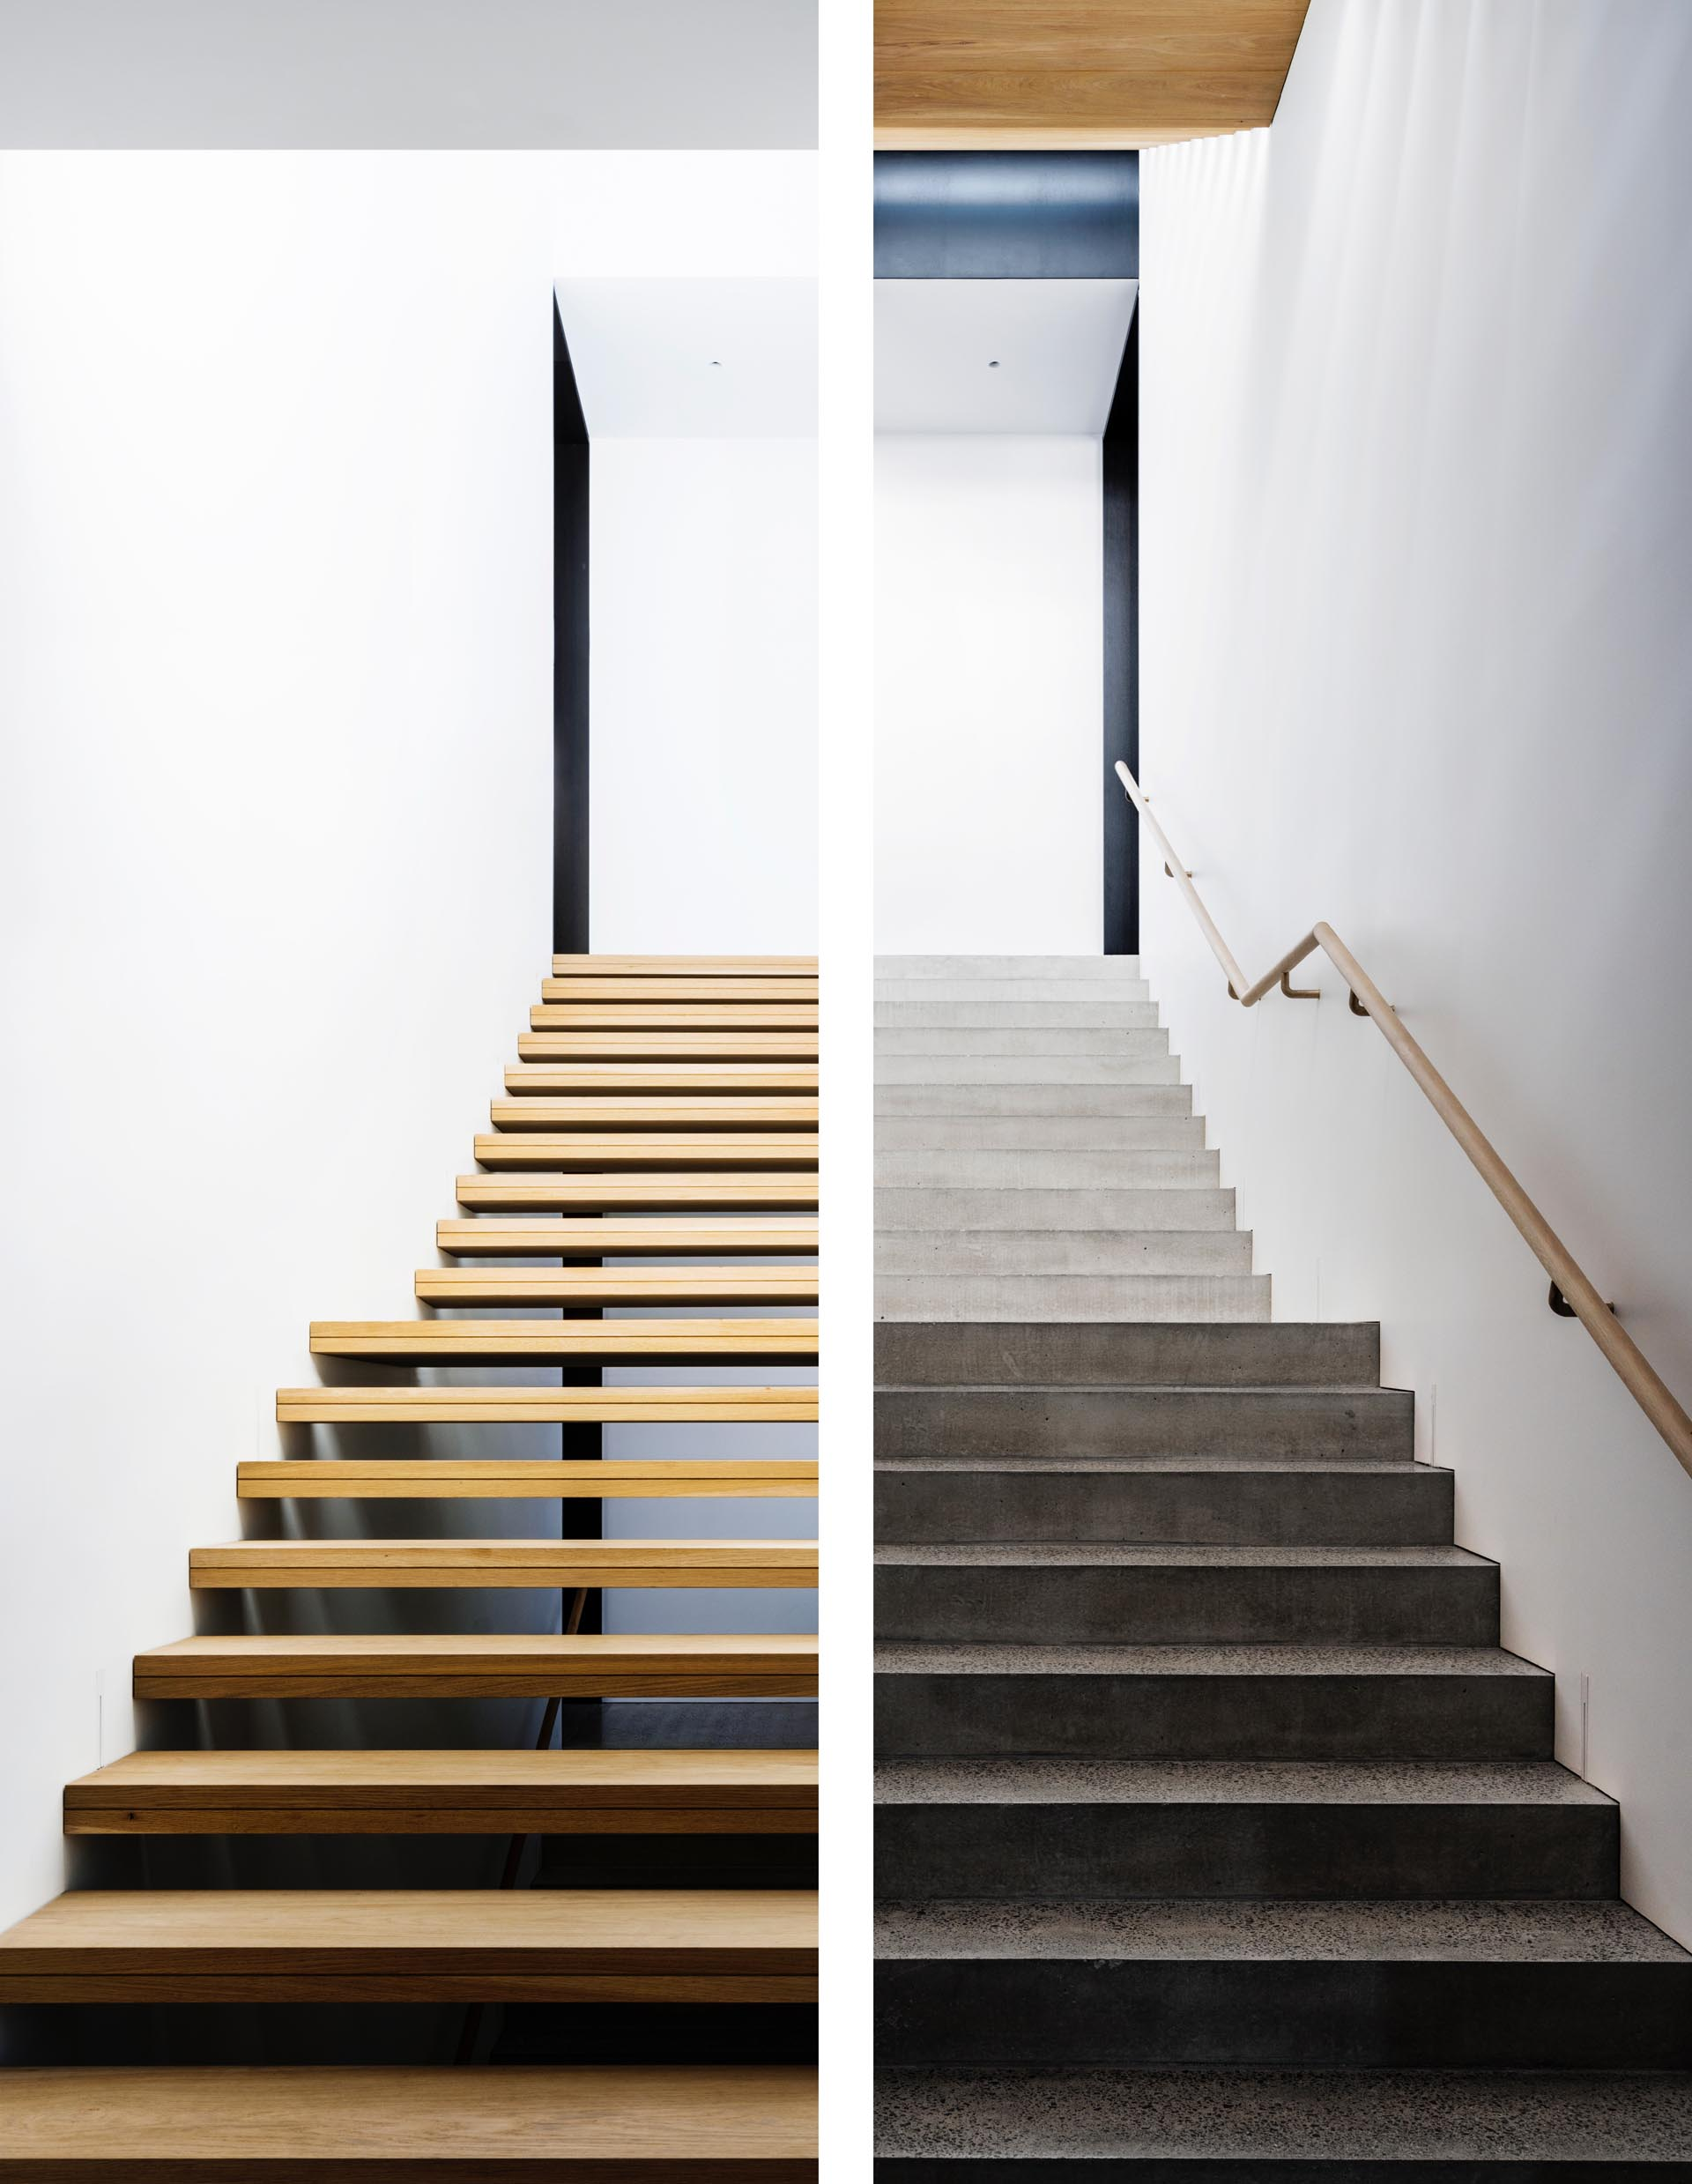 Two different styles of stairs, one wood and one concrete.